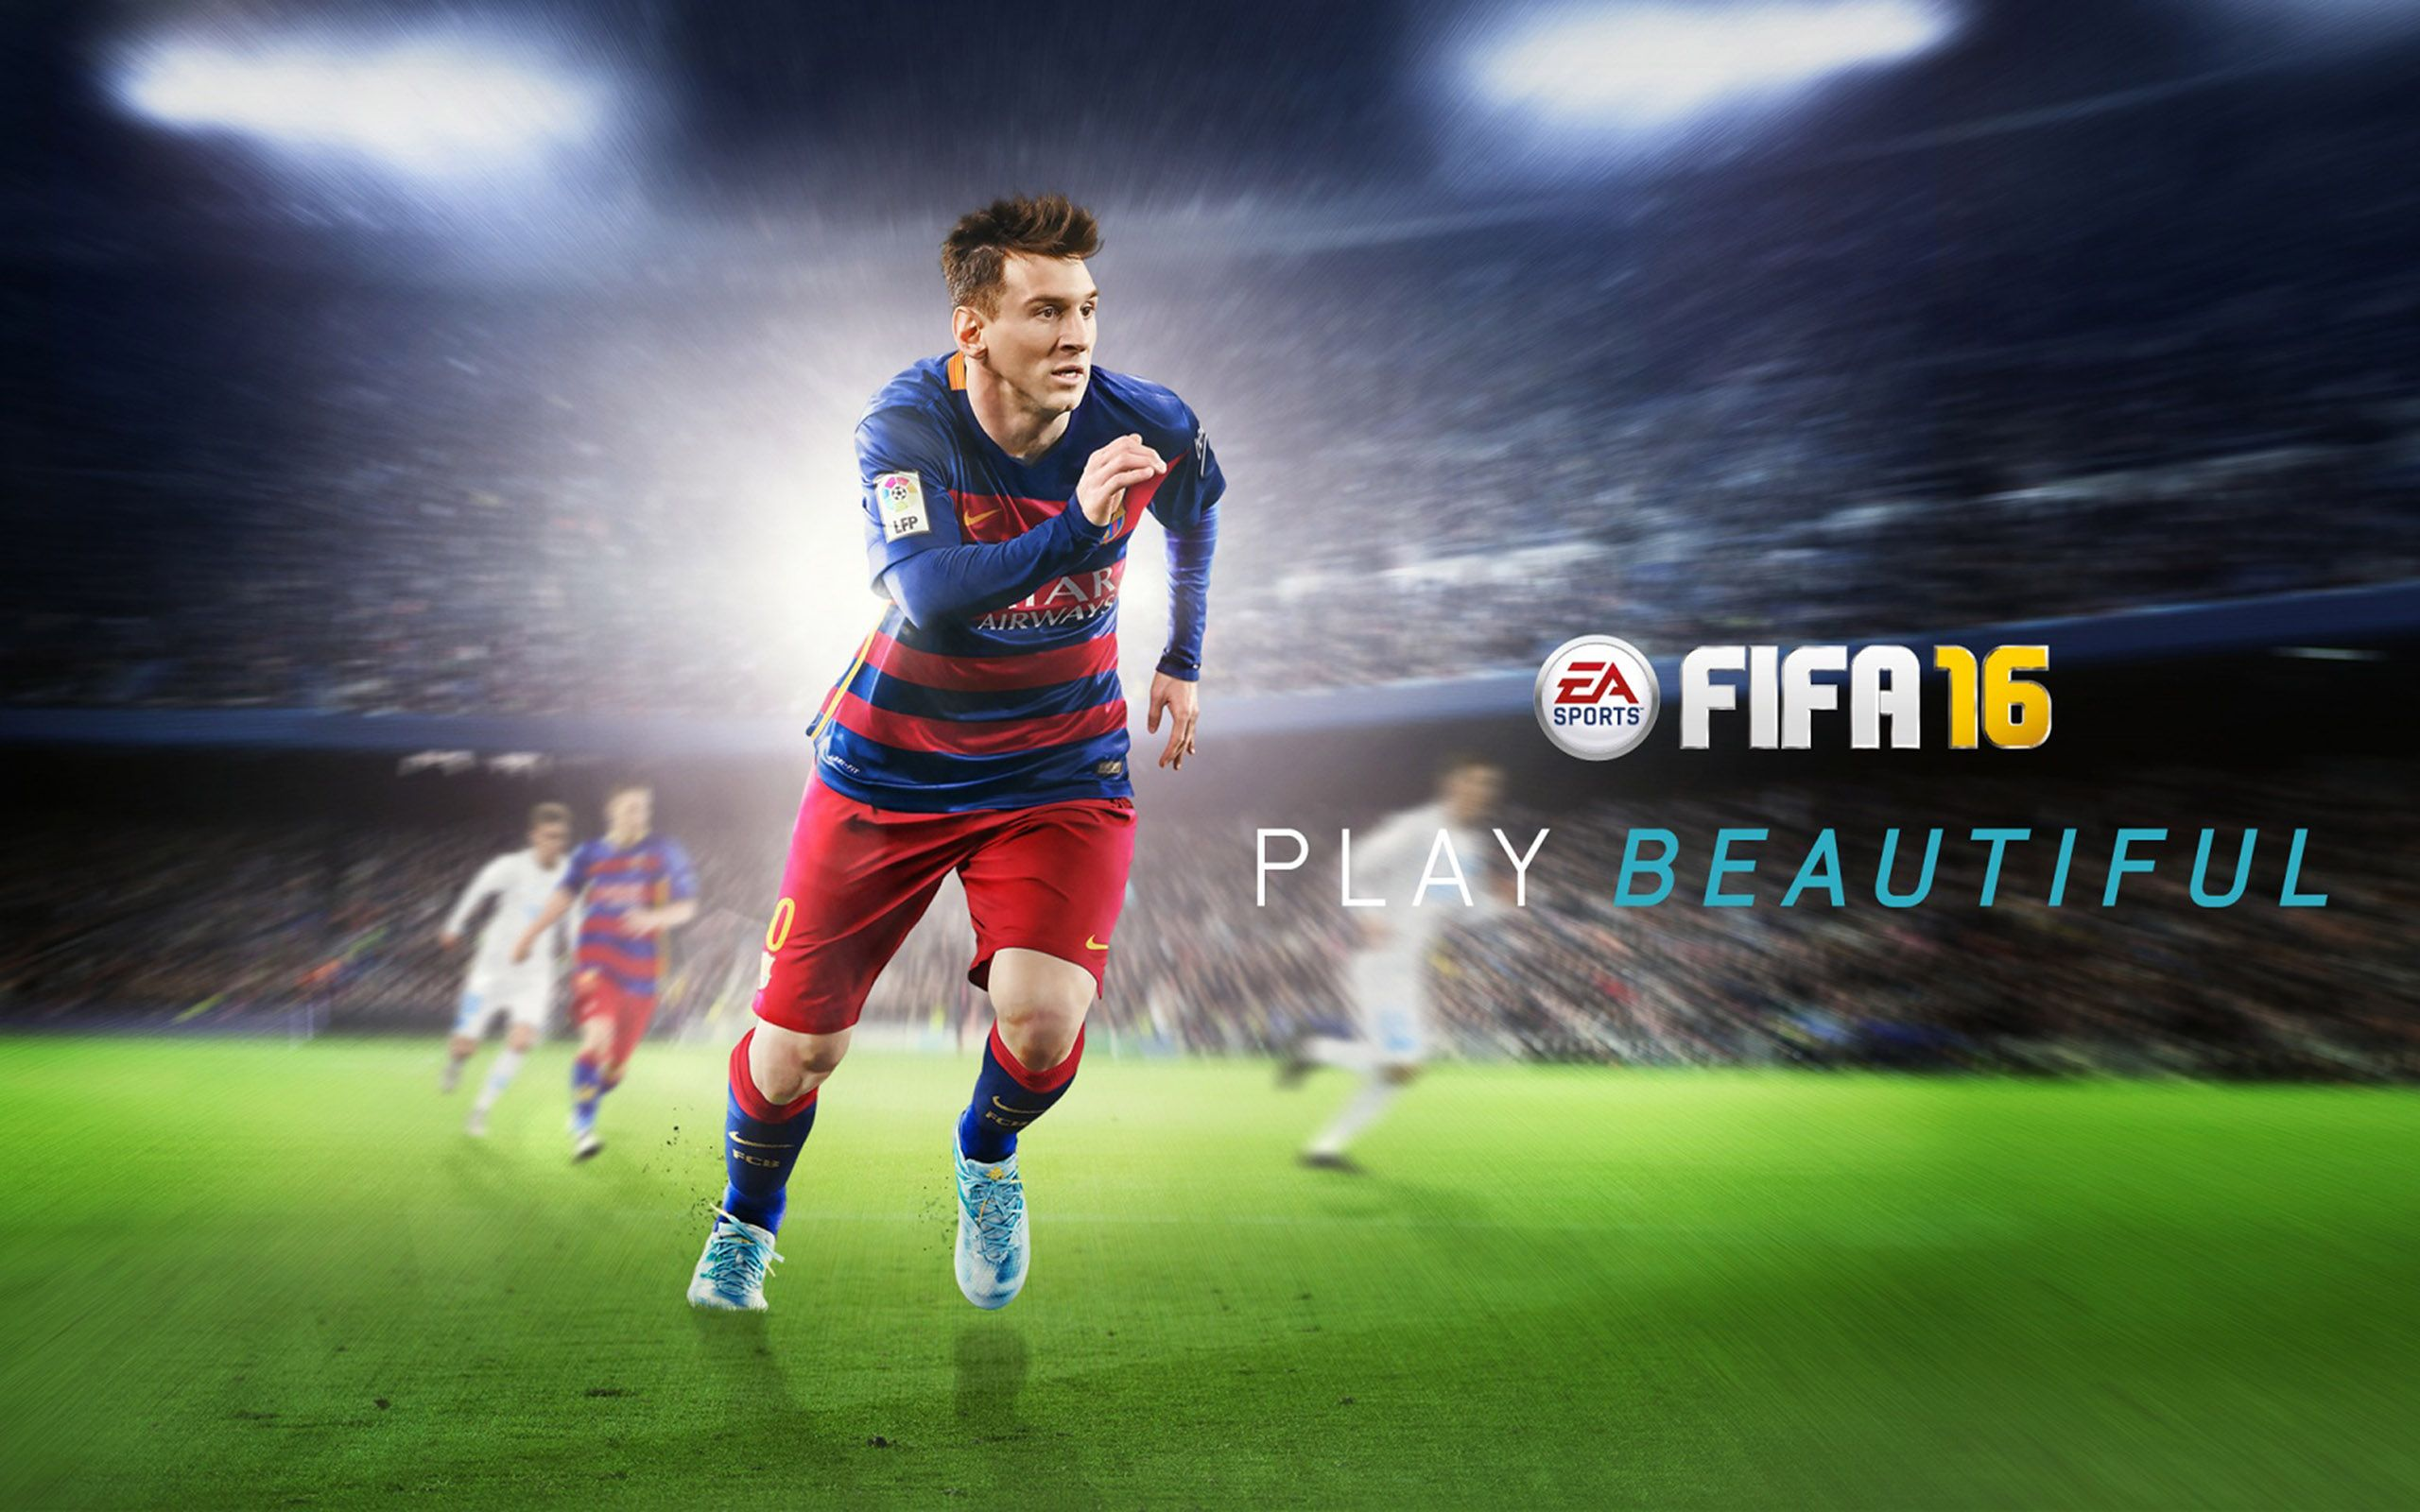 messi football wallpapers hd | art wallpapers | pinterest | messi